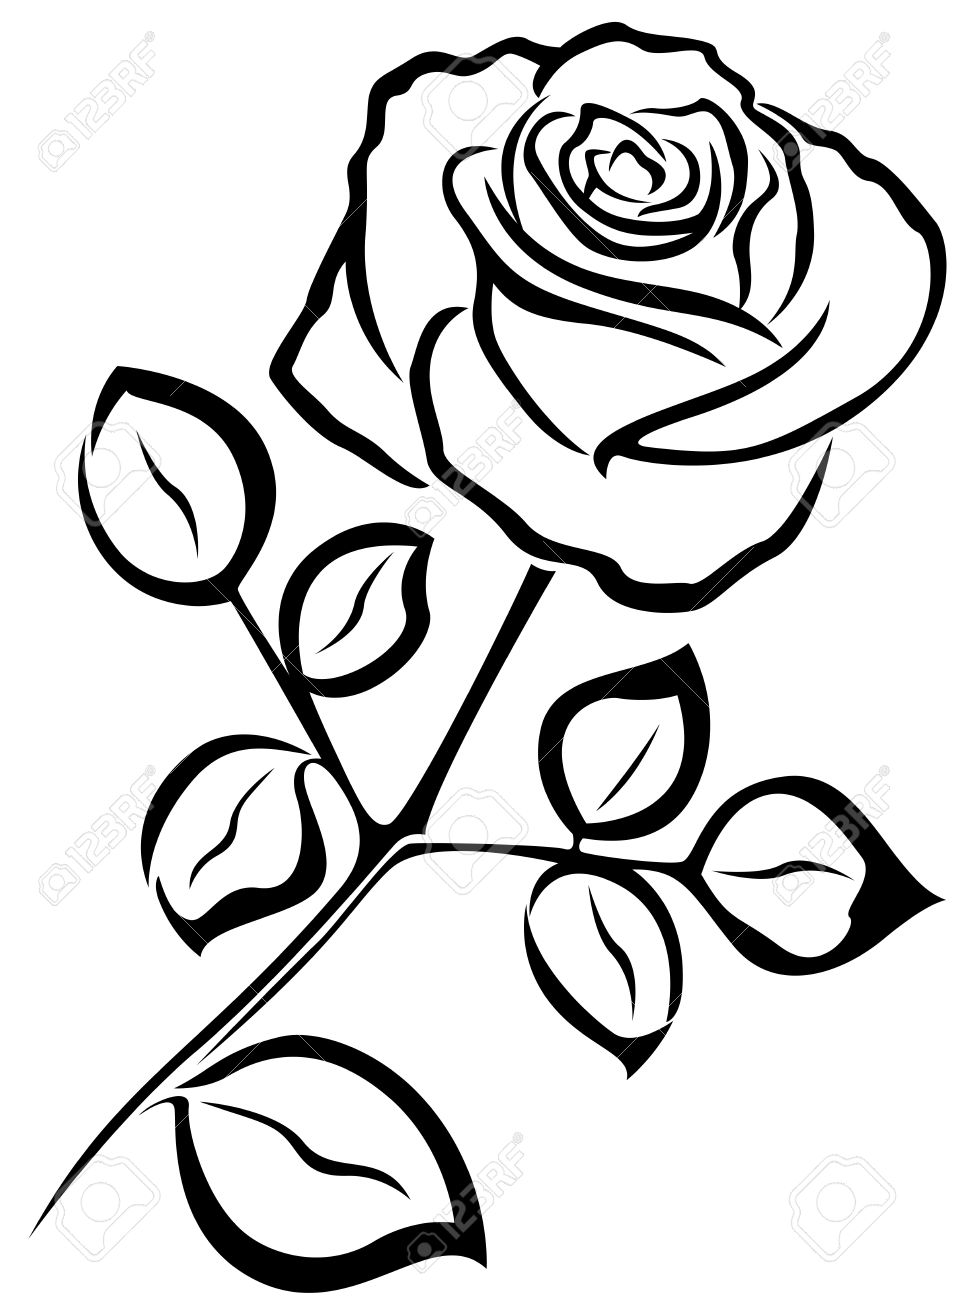 975x1300 Black Vector Outline Of Single Rose Flower Isolated On A White